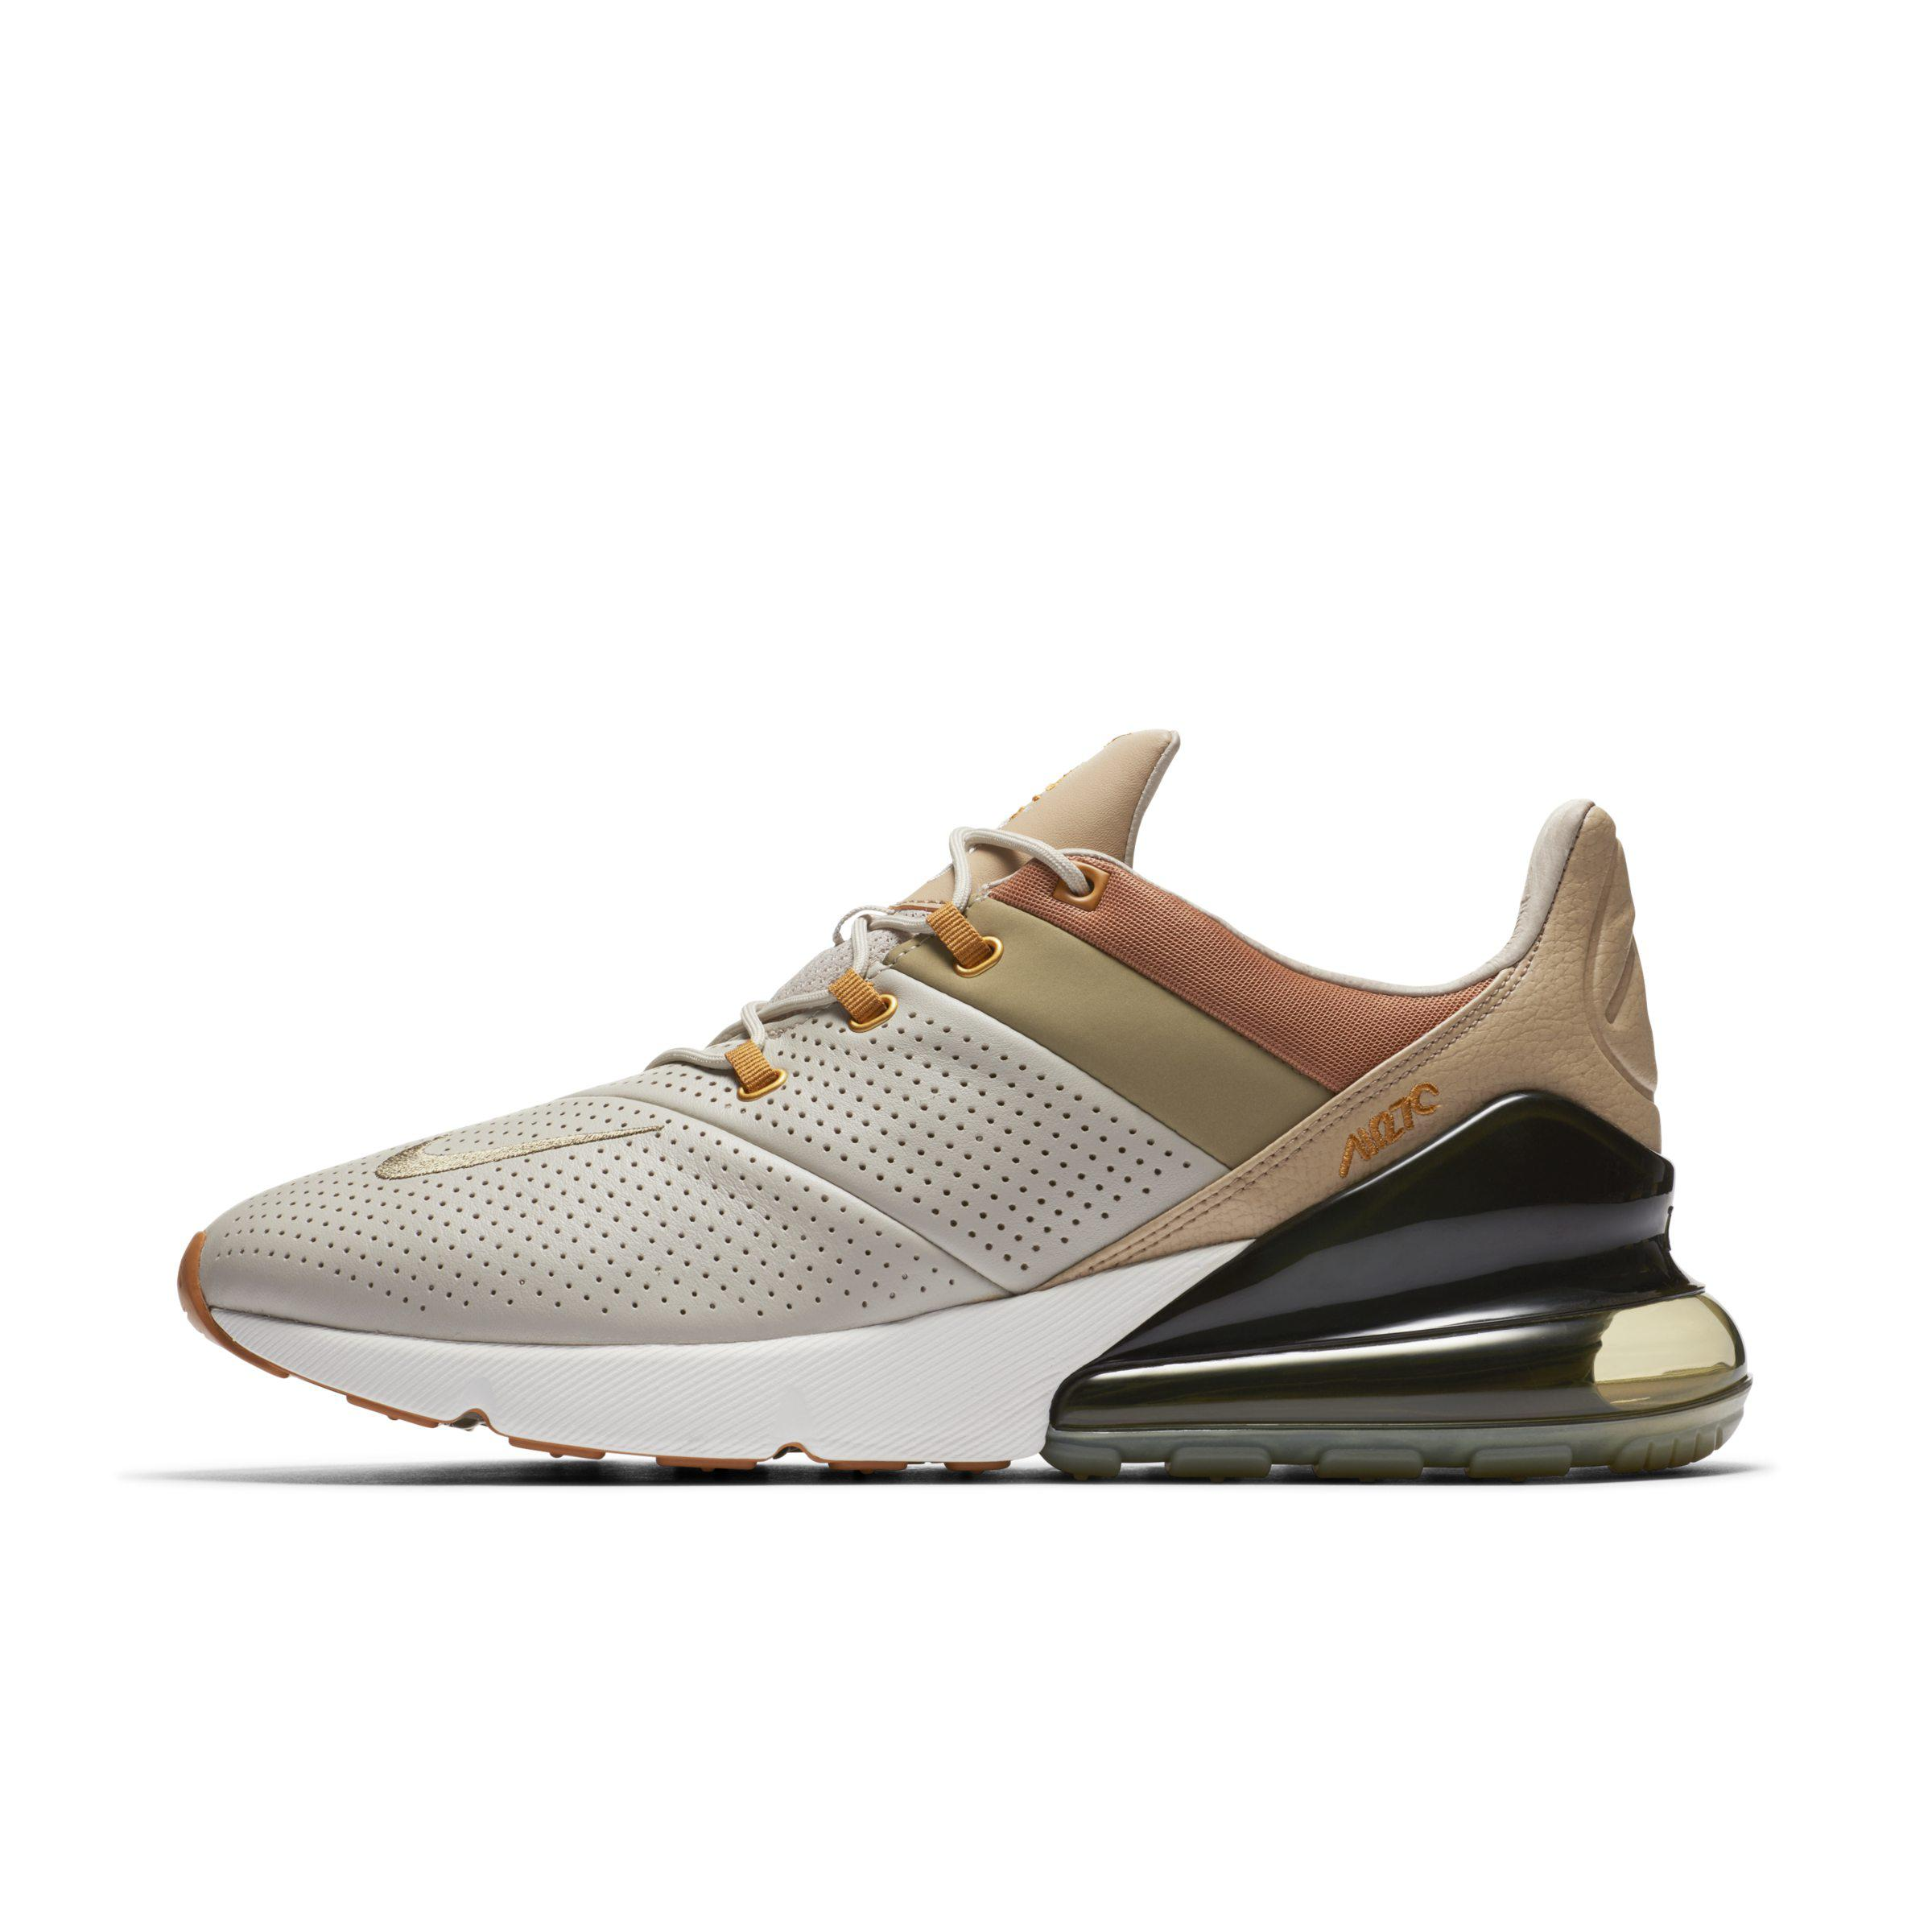 Nike Air Max 270 Premium Shoe in Brown for Men - Lyst a16d97a79